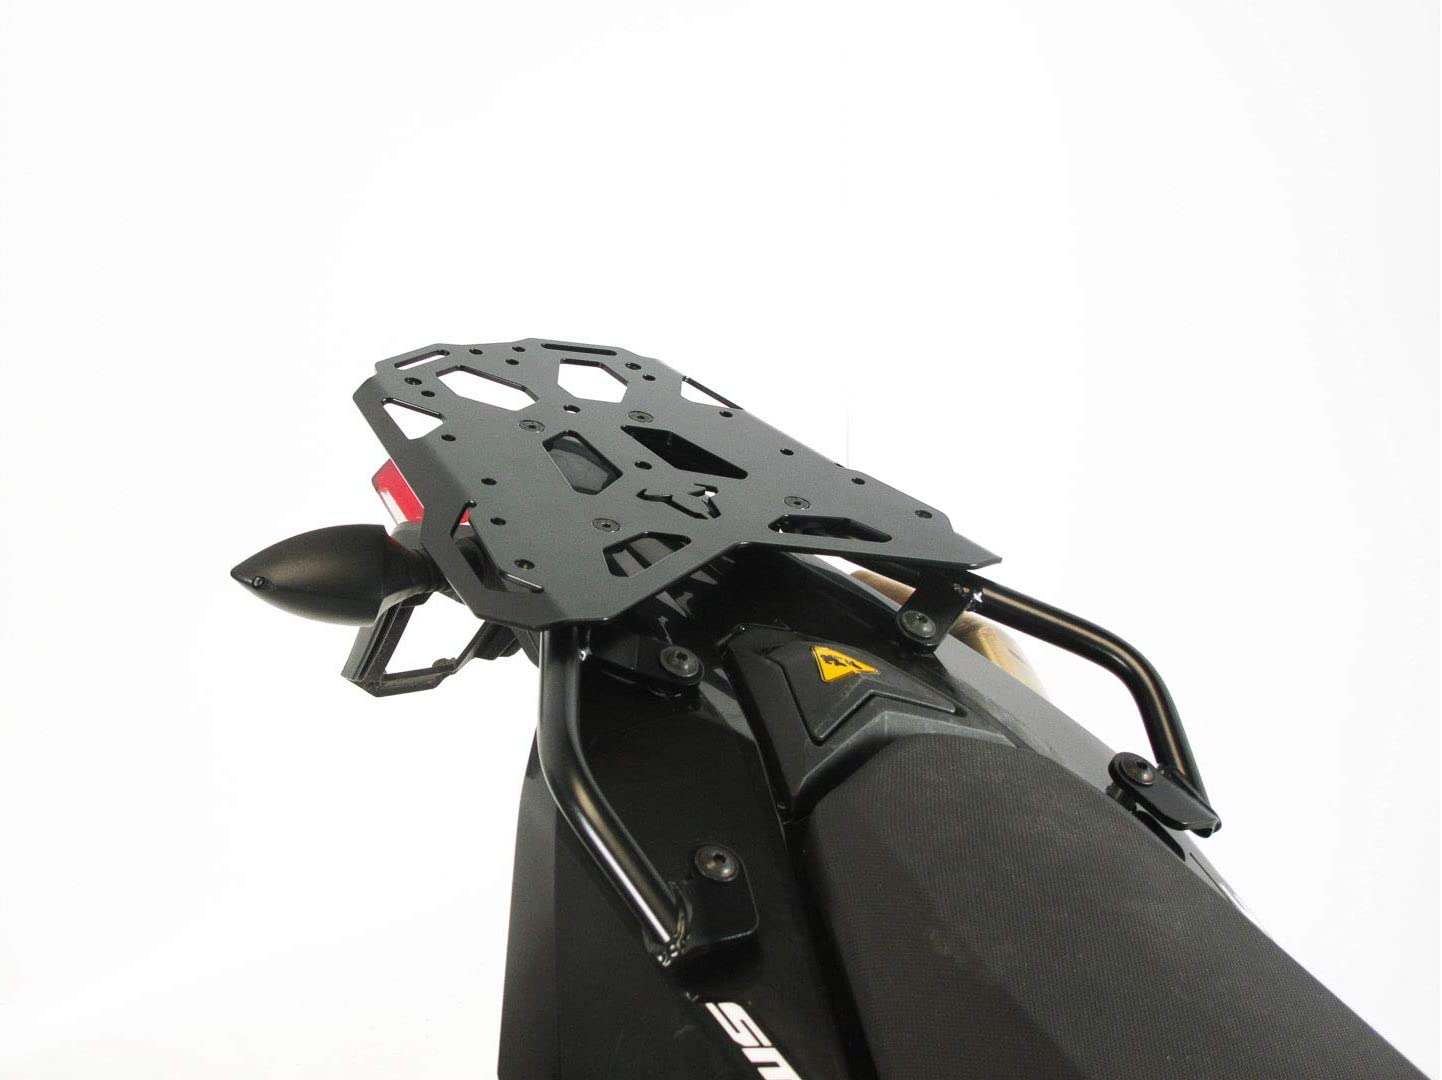 SW-MOTECH STEEL-RACK To Fit Many Top Case Styles For KTM 690 Enduro 07-19